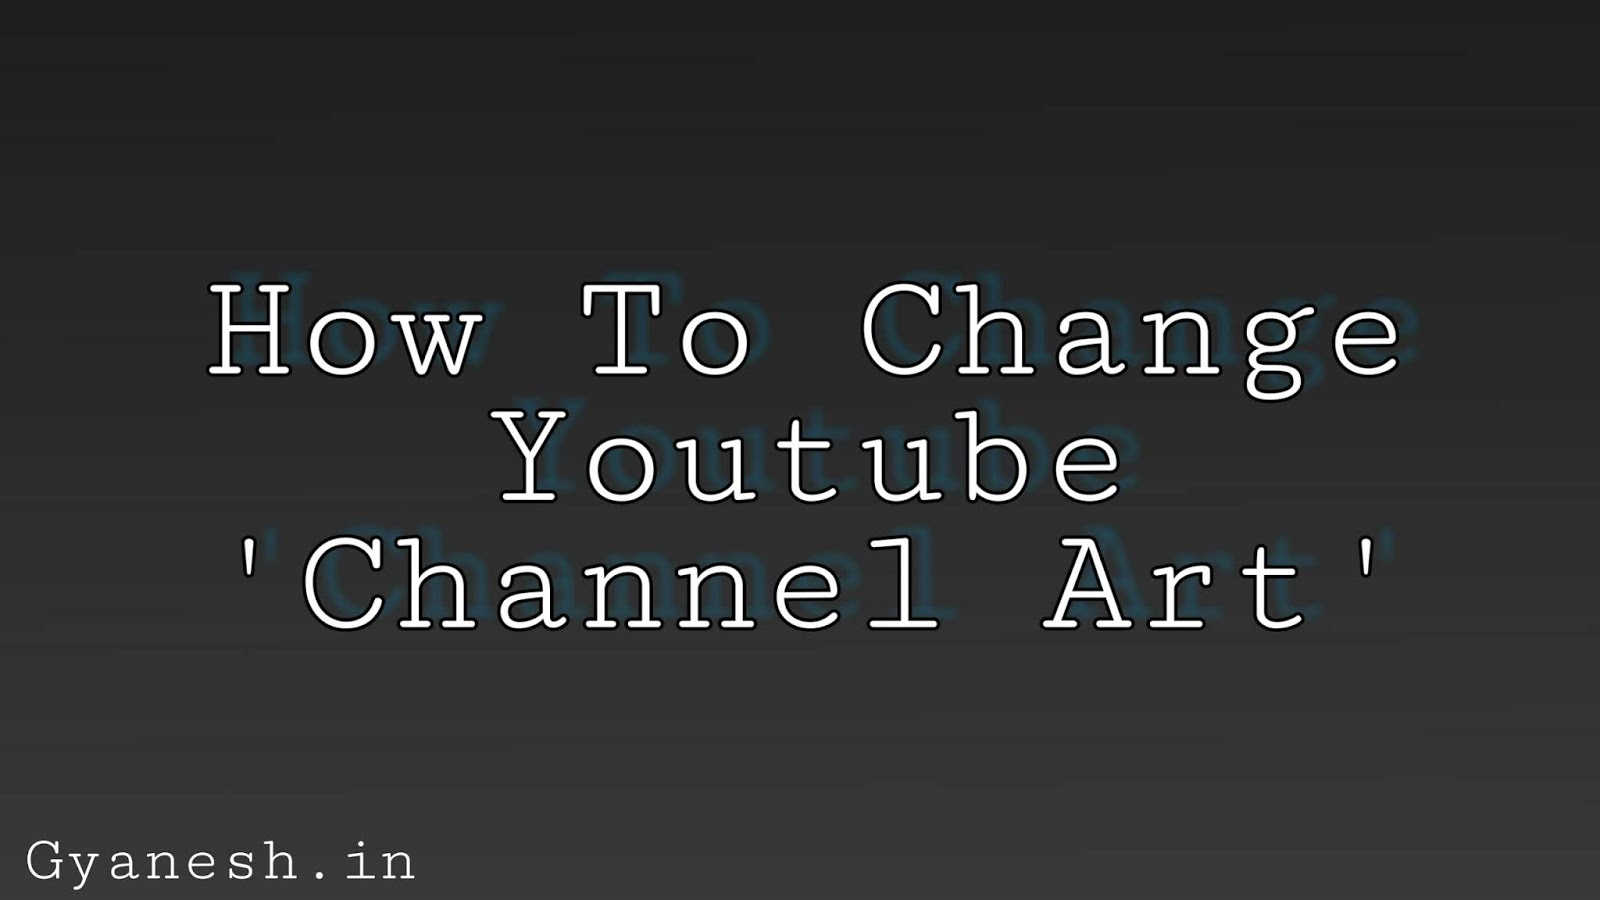 Change Youtube Channel Art